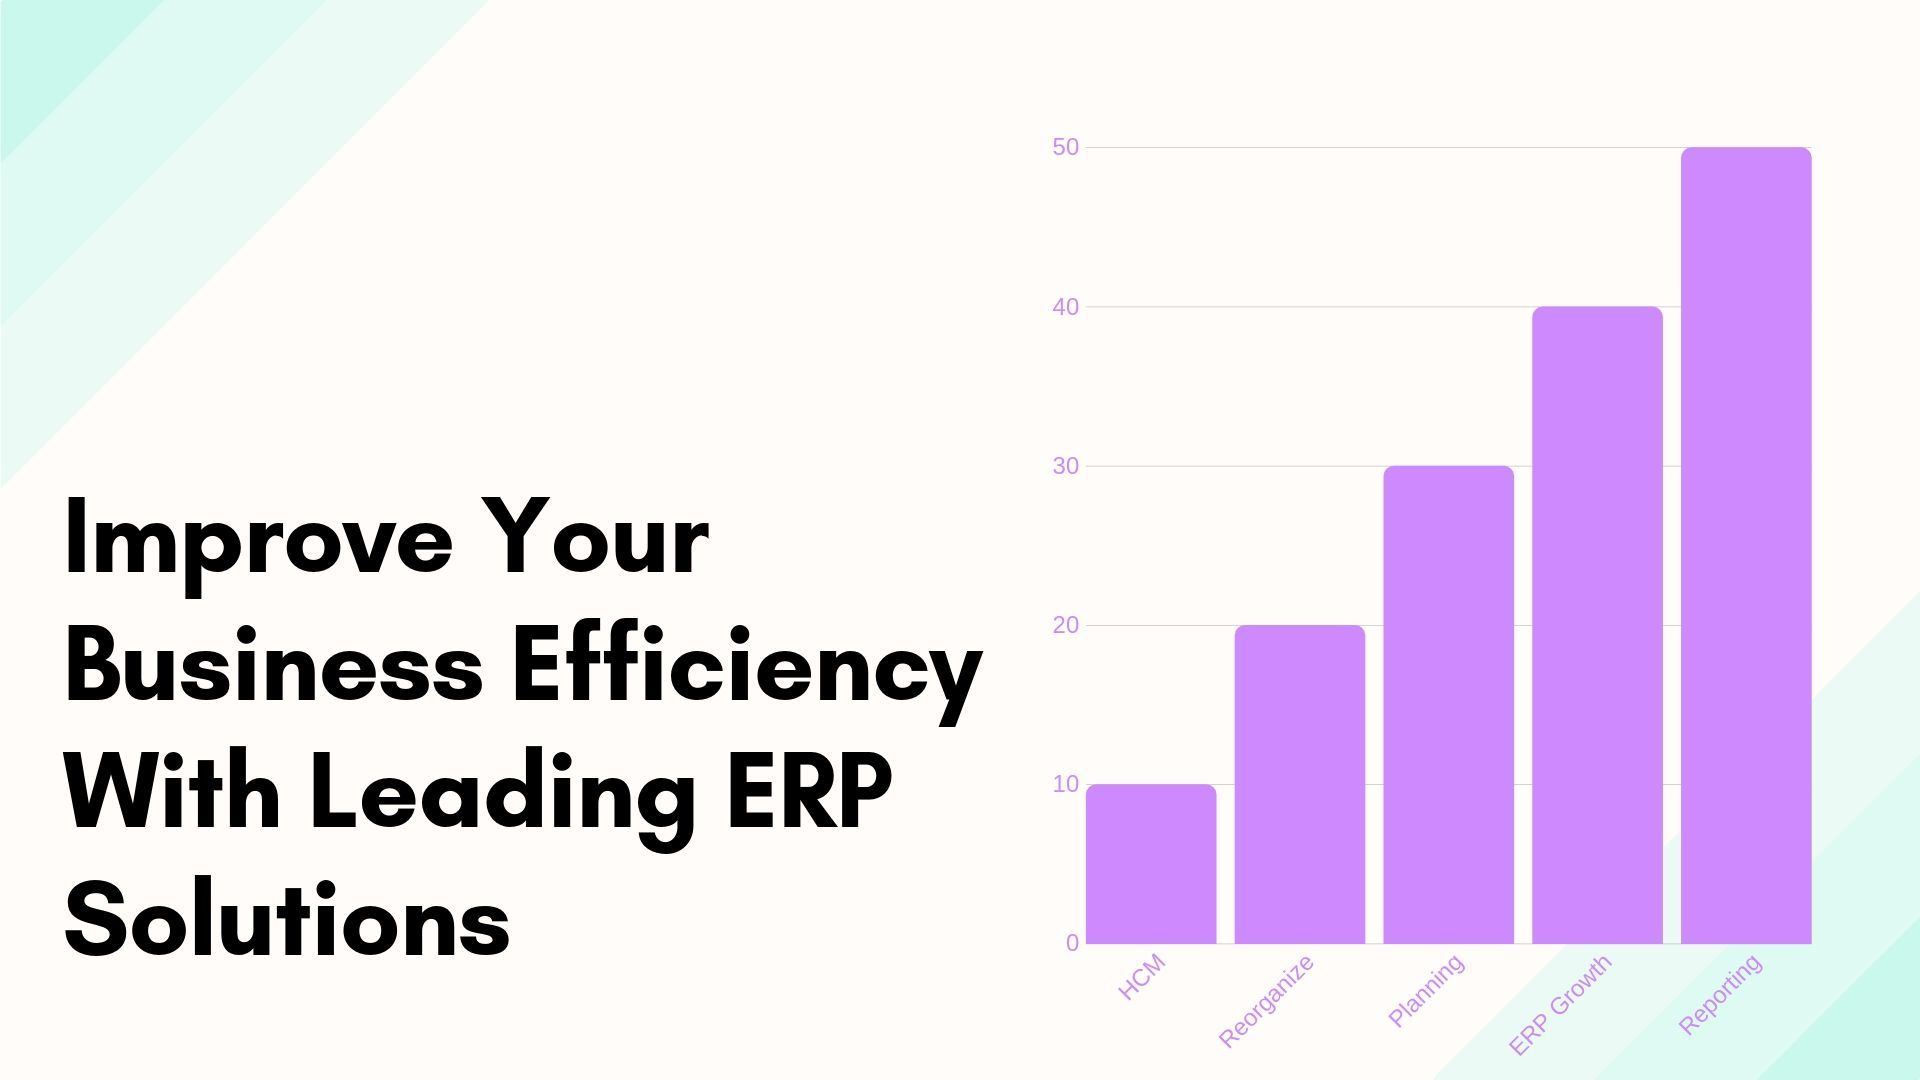 Improve Your Business Efficiency With Leading ERP Solutions